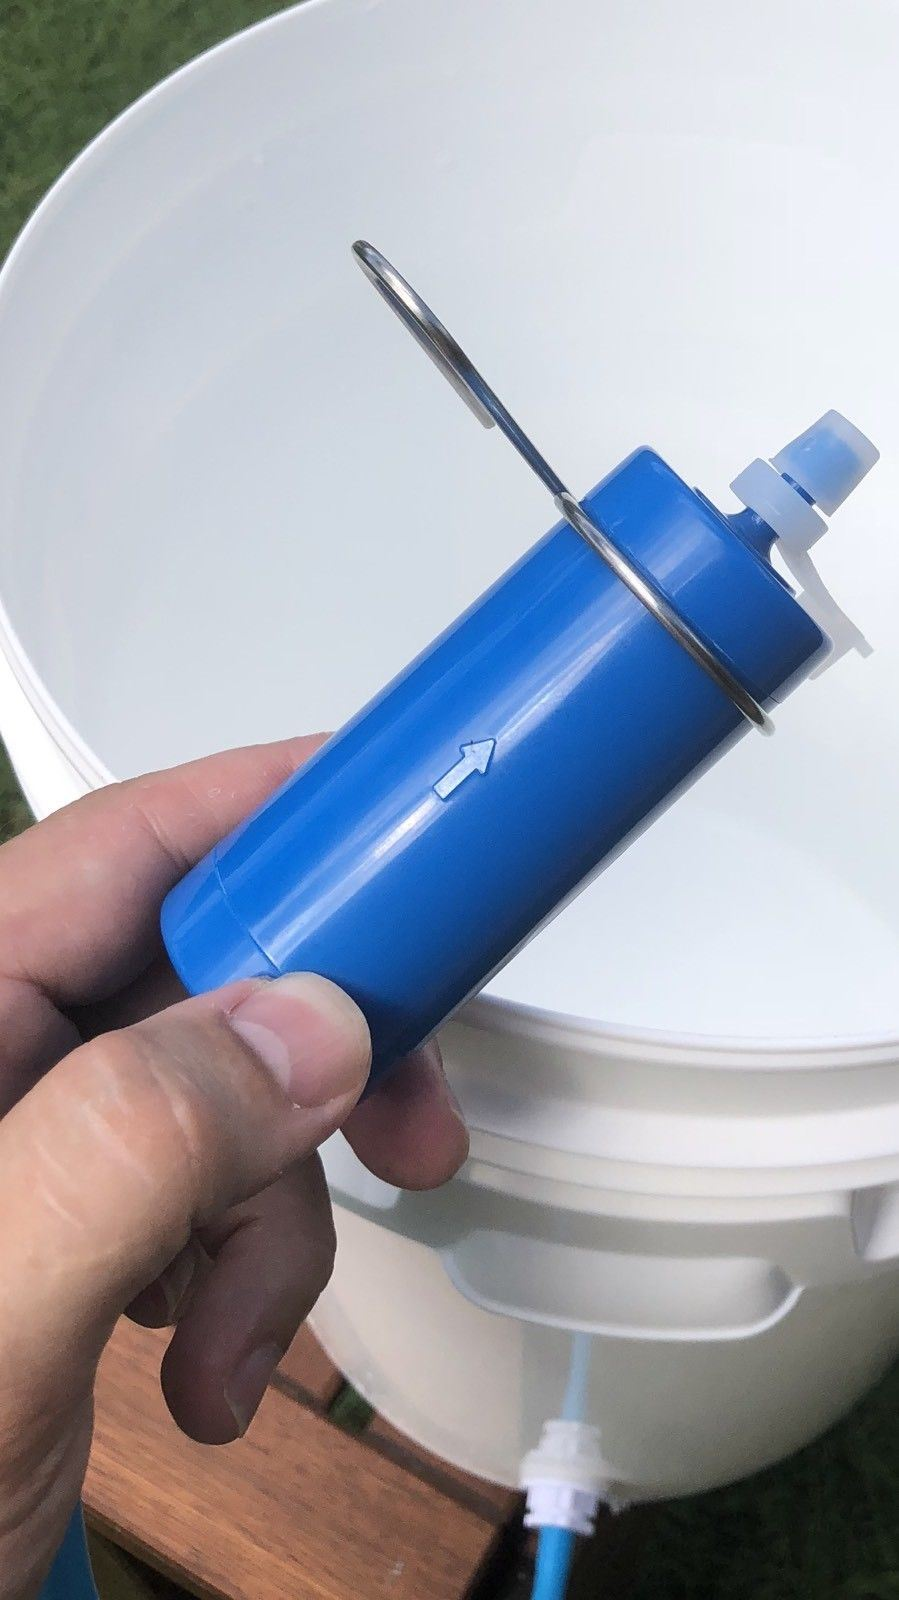 3500 Litre Survival Gravity Water Filter Hiking Camping Emergency - Outback Tactical